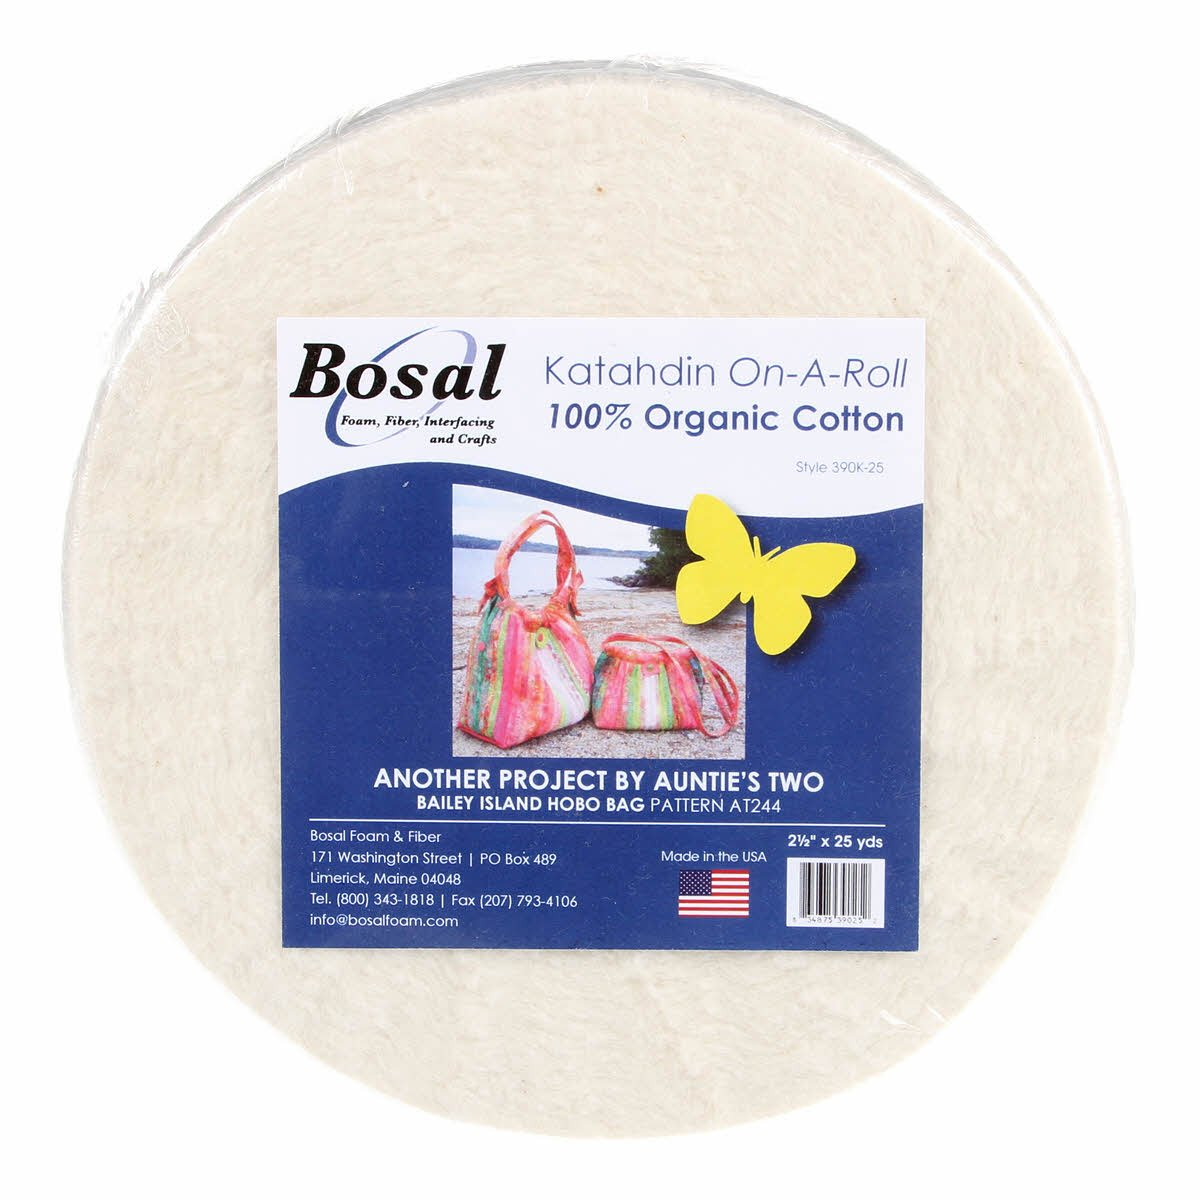 Bosal Katahdin Batting On-A-Roll, Summer 3 oz, 2-1/2 inch by 25 yards, 100% Organic Cotton (1 Roll),Off-White 390K-25